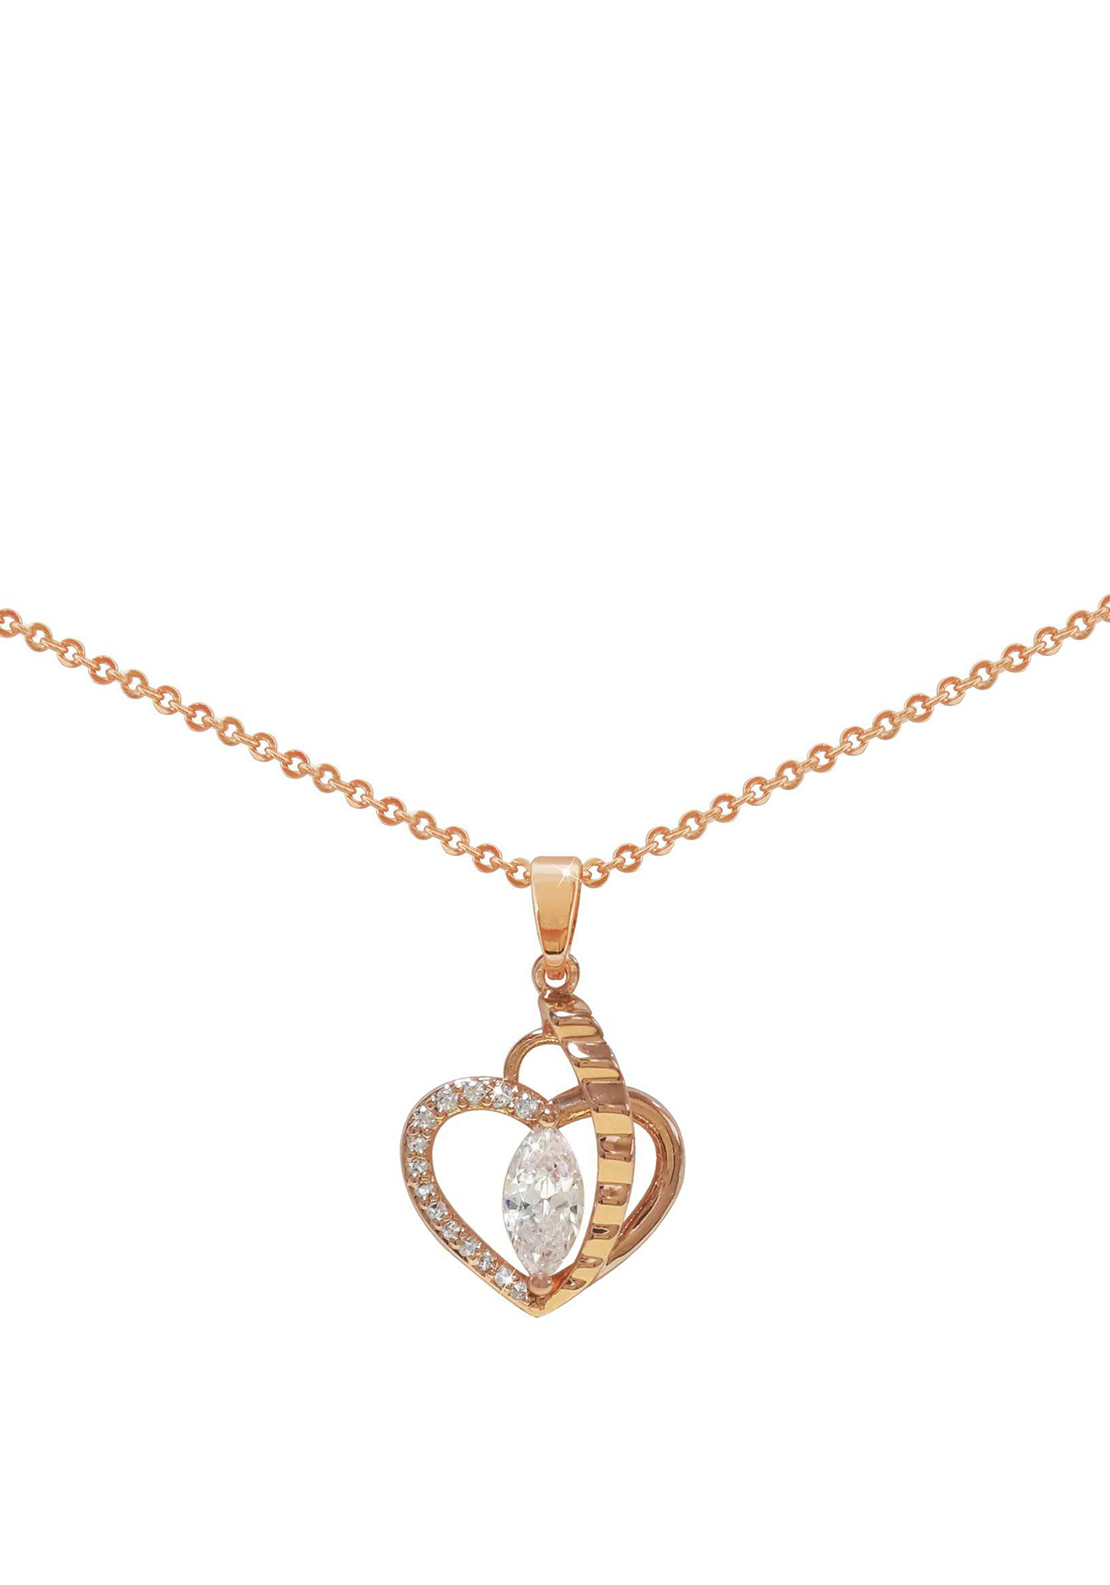 Tipperary Crystal Marquis Crystal Heart Pendant Necklace, Rose Gold